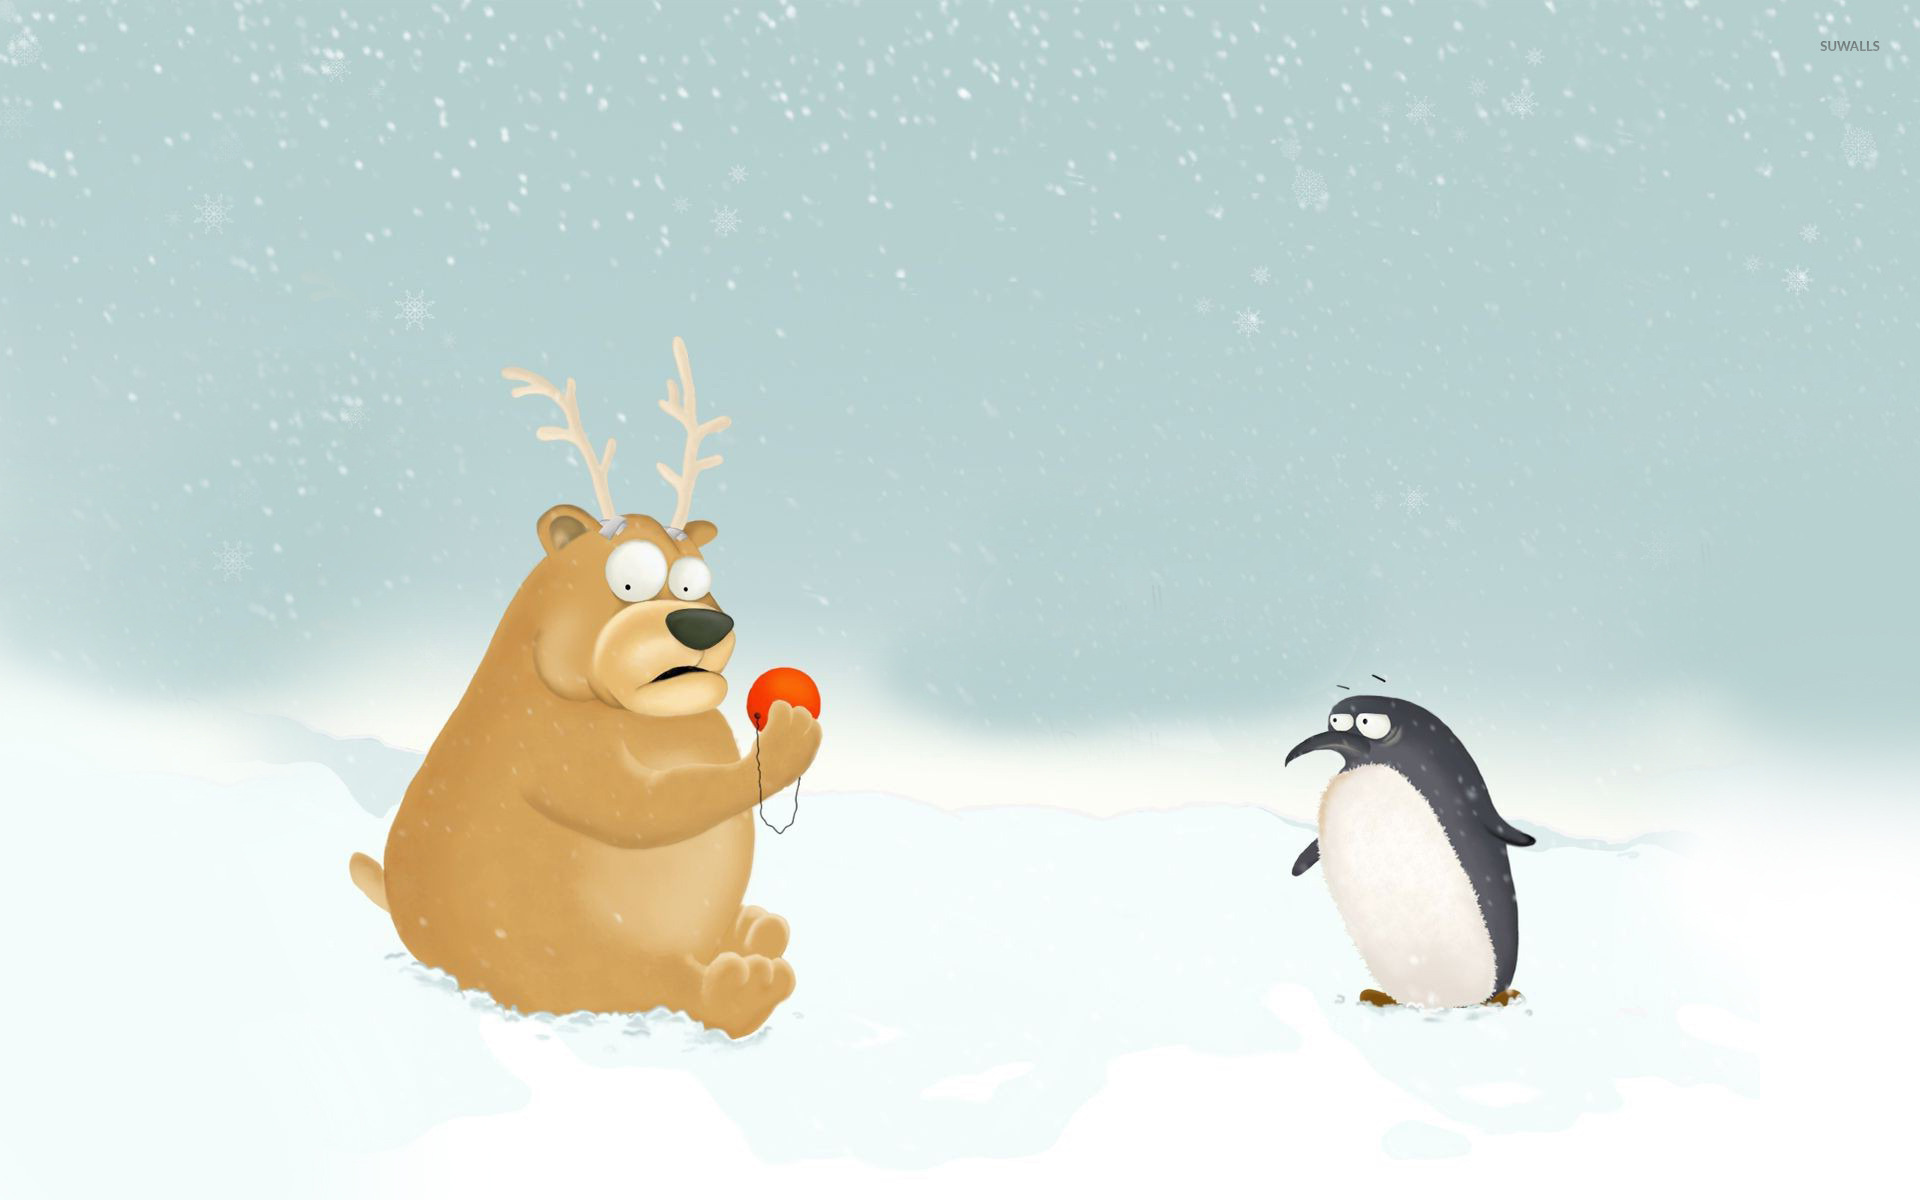 Penguin and bear dressed as Rudolph wallpaper   Funny wallpapers 1920x1200